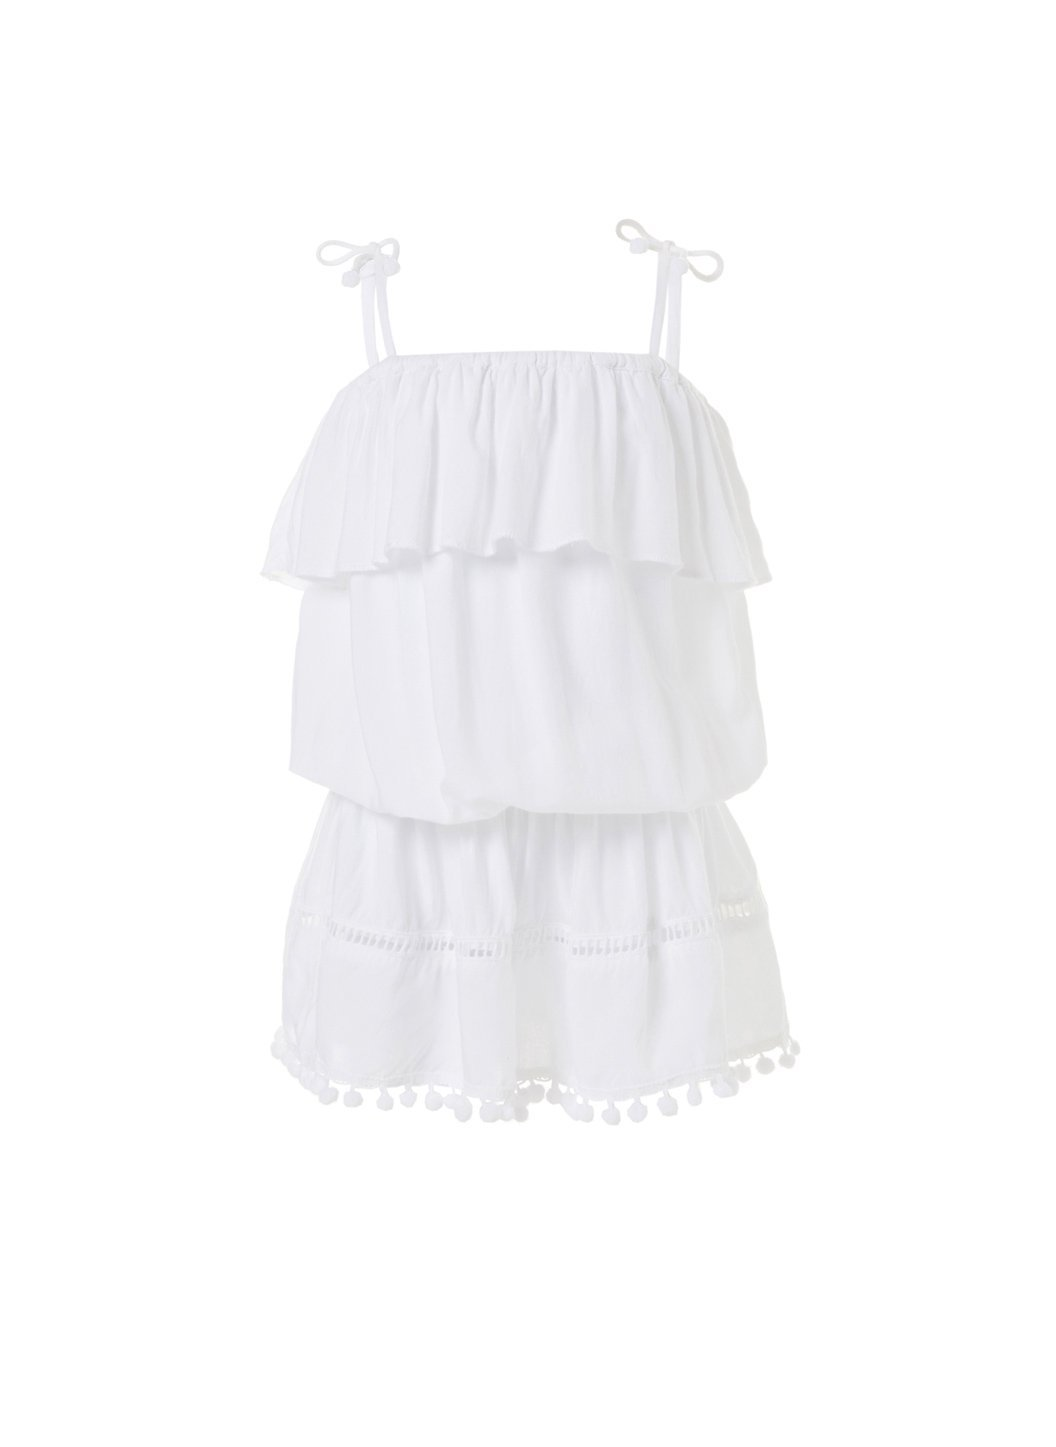 baby joy white beach dress 2019